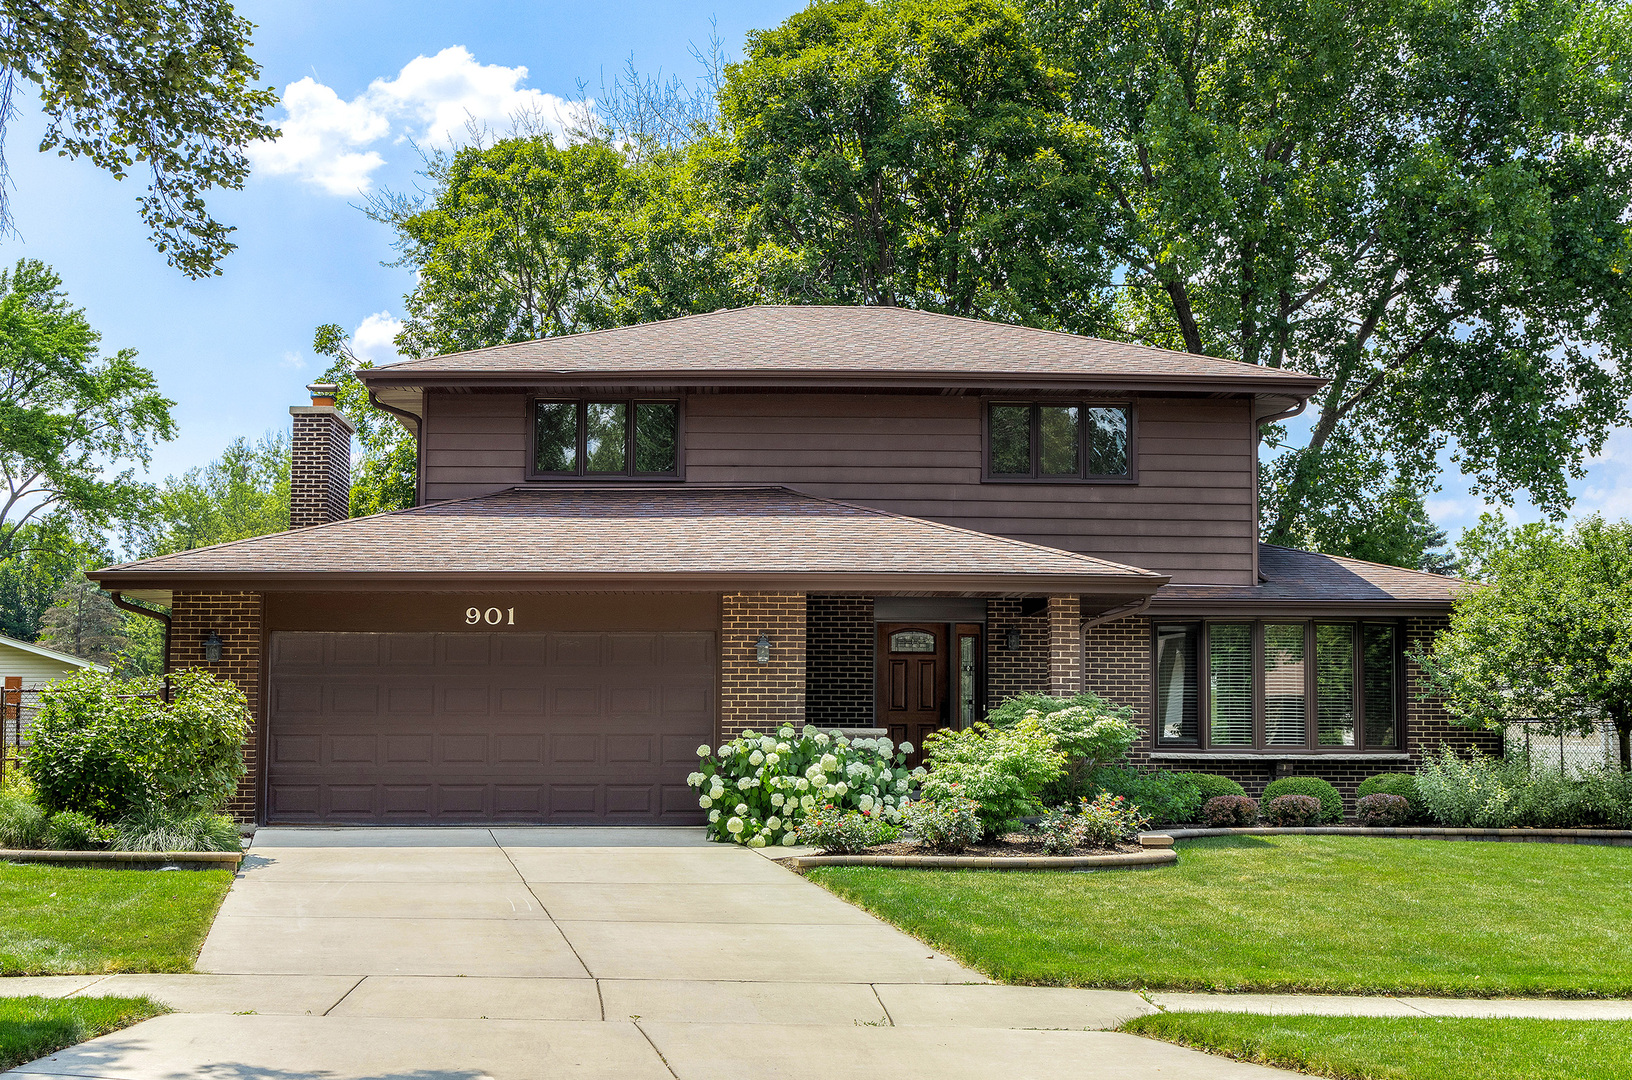 Photo for 901 Lancaster Avenue, Downers Grove, IL 60516 (MLS # 10776279)